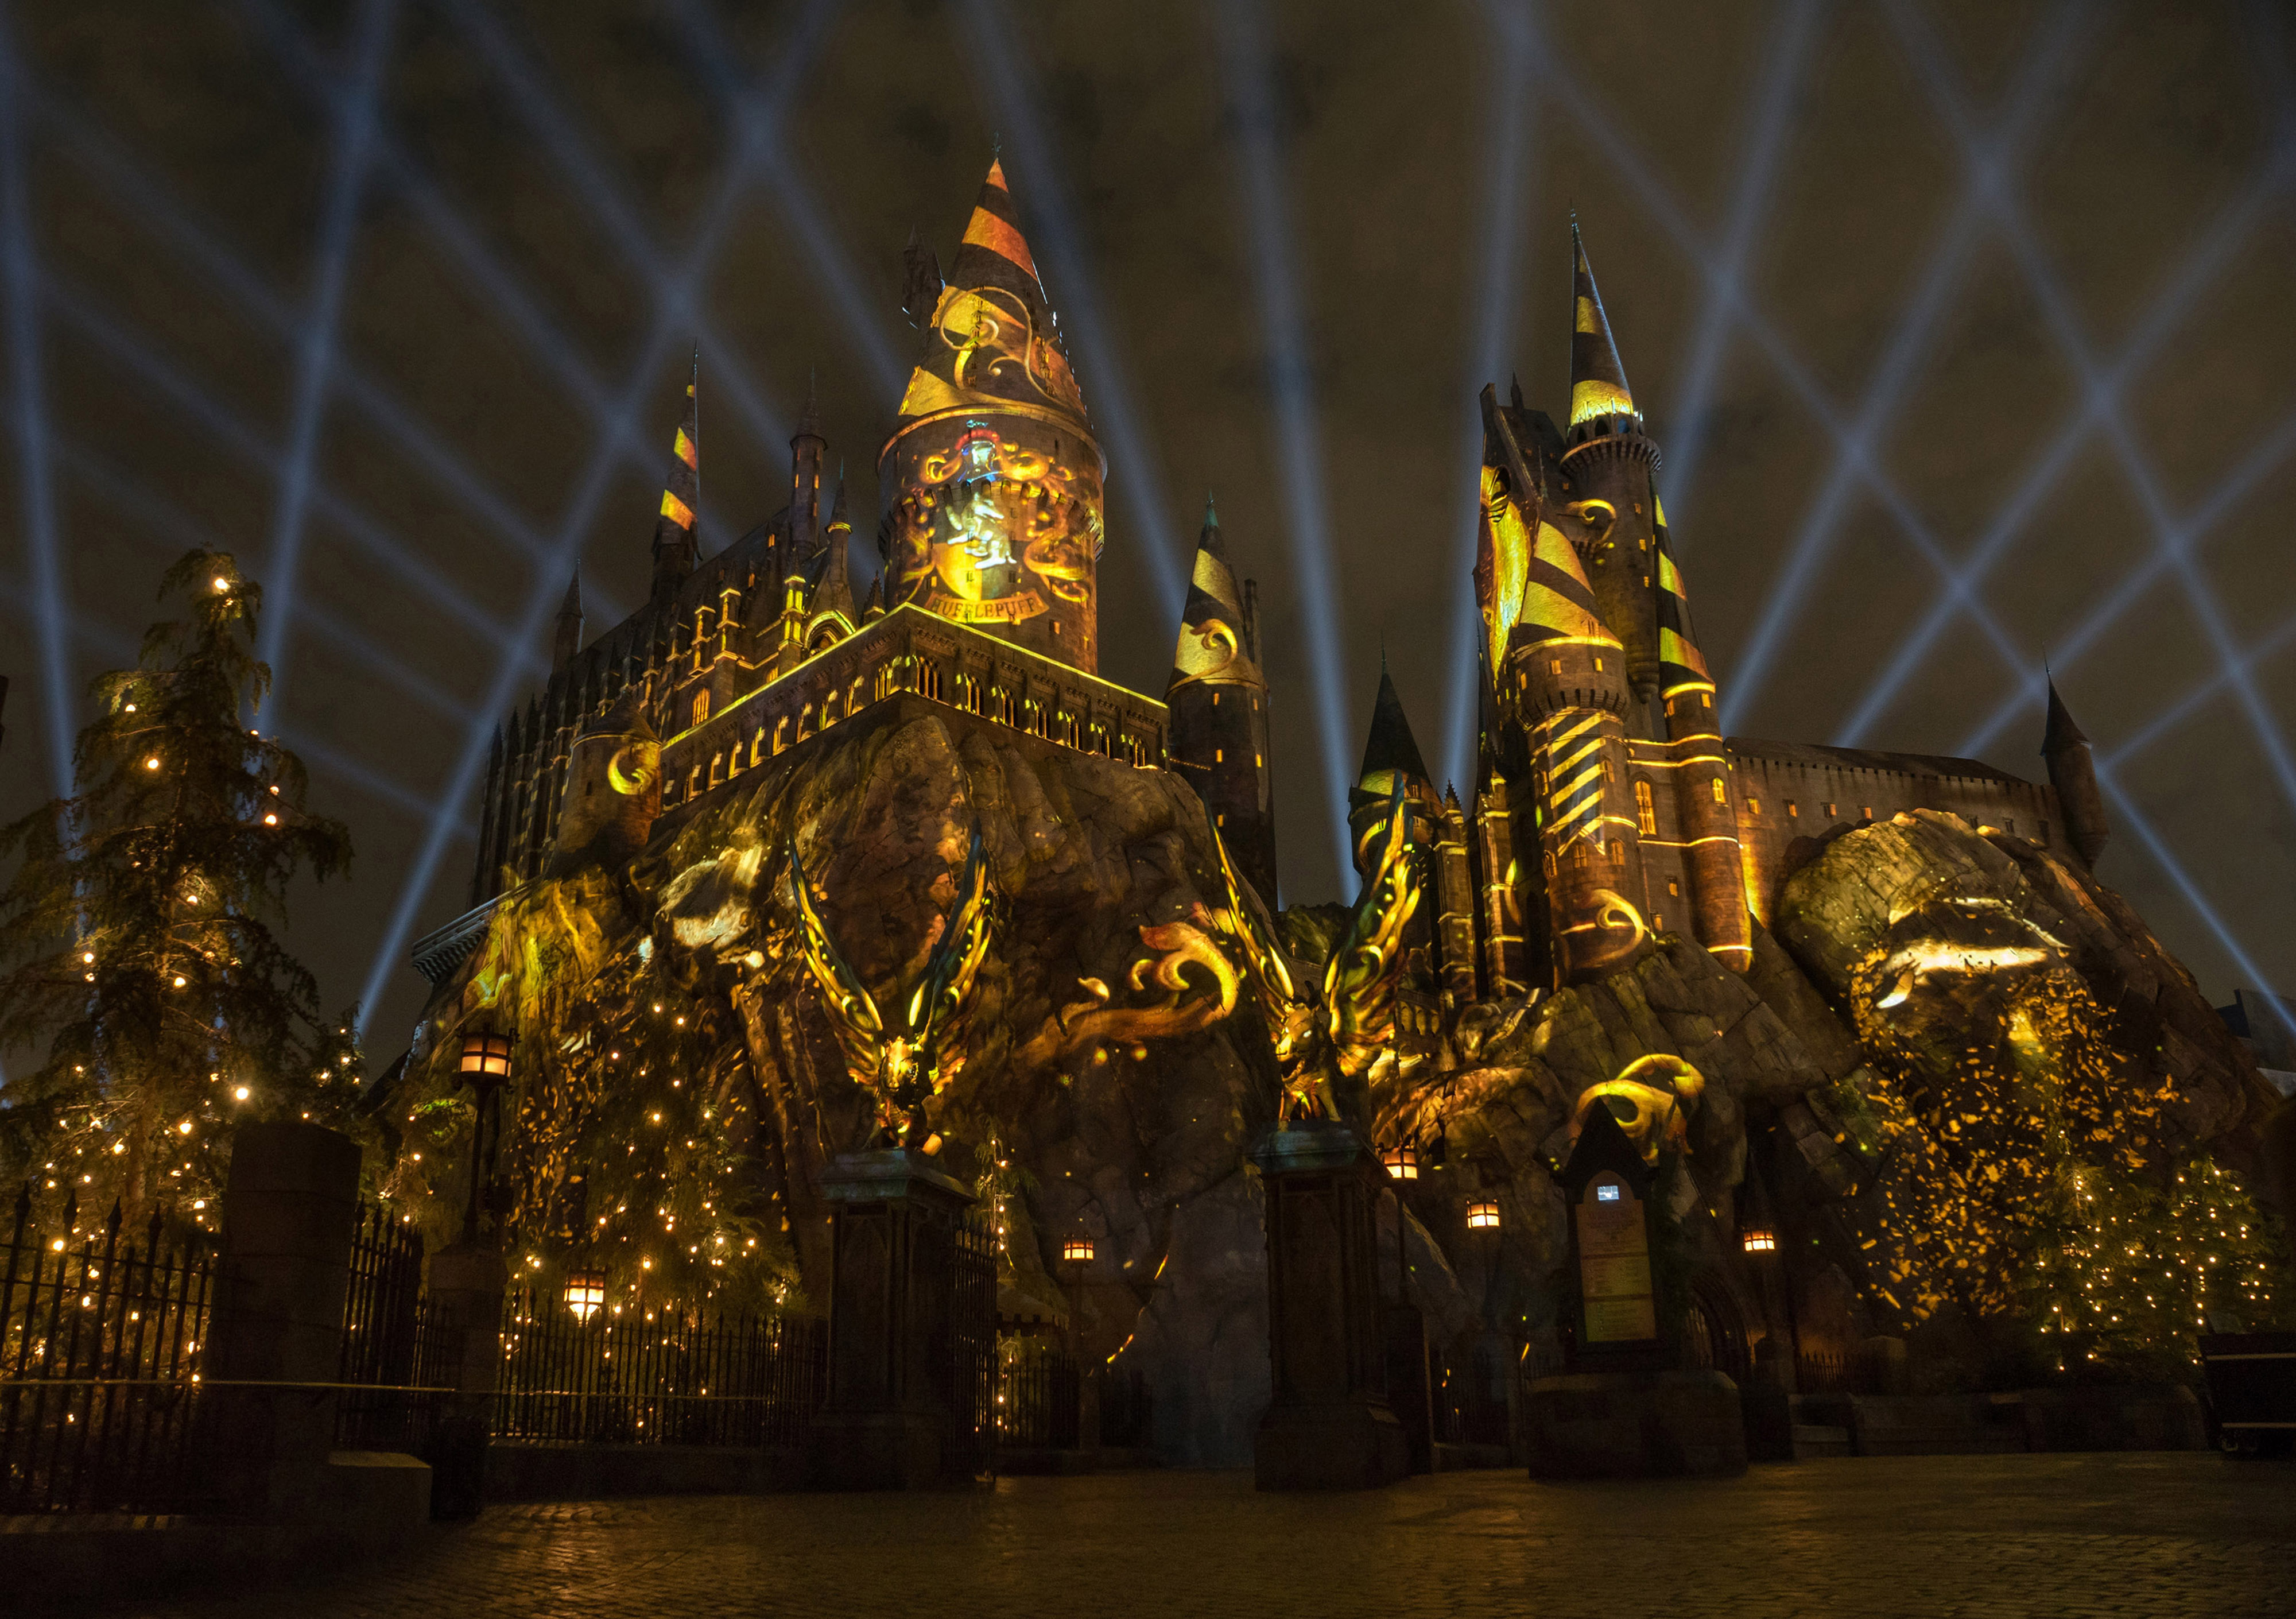 """""""The Nighttime Lights at Hogwarts Castle"""" will project on the castle and around """"The Wizarding World of Harry Potter"""" area at Universal Studios Hollywood beginning Friday, June 23, at the theme park. (Photo courtesy: Universal Studios Hollywood)"""